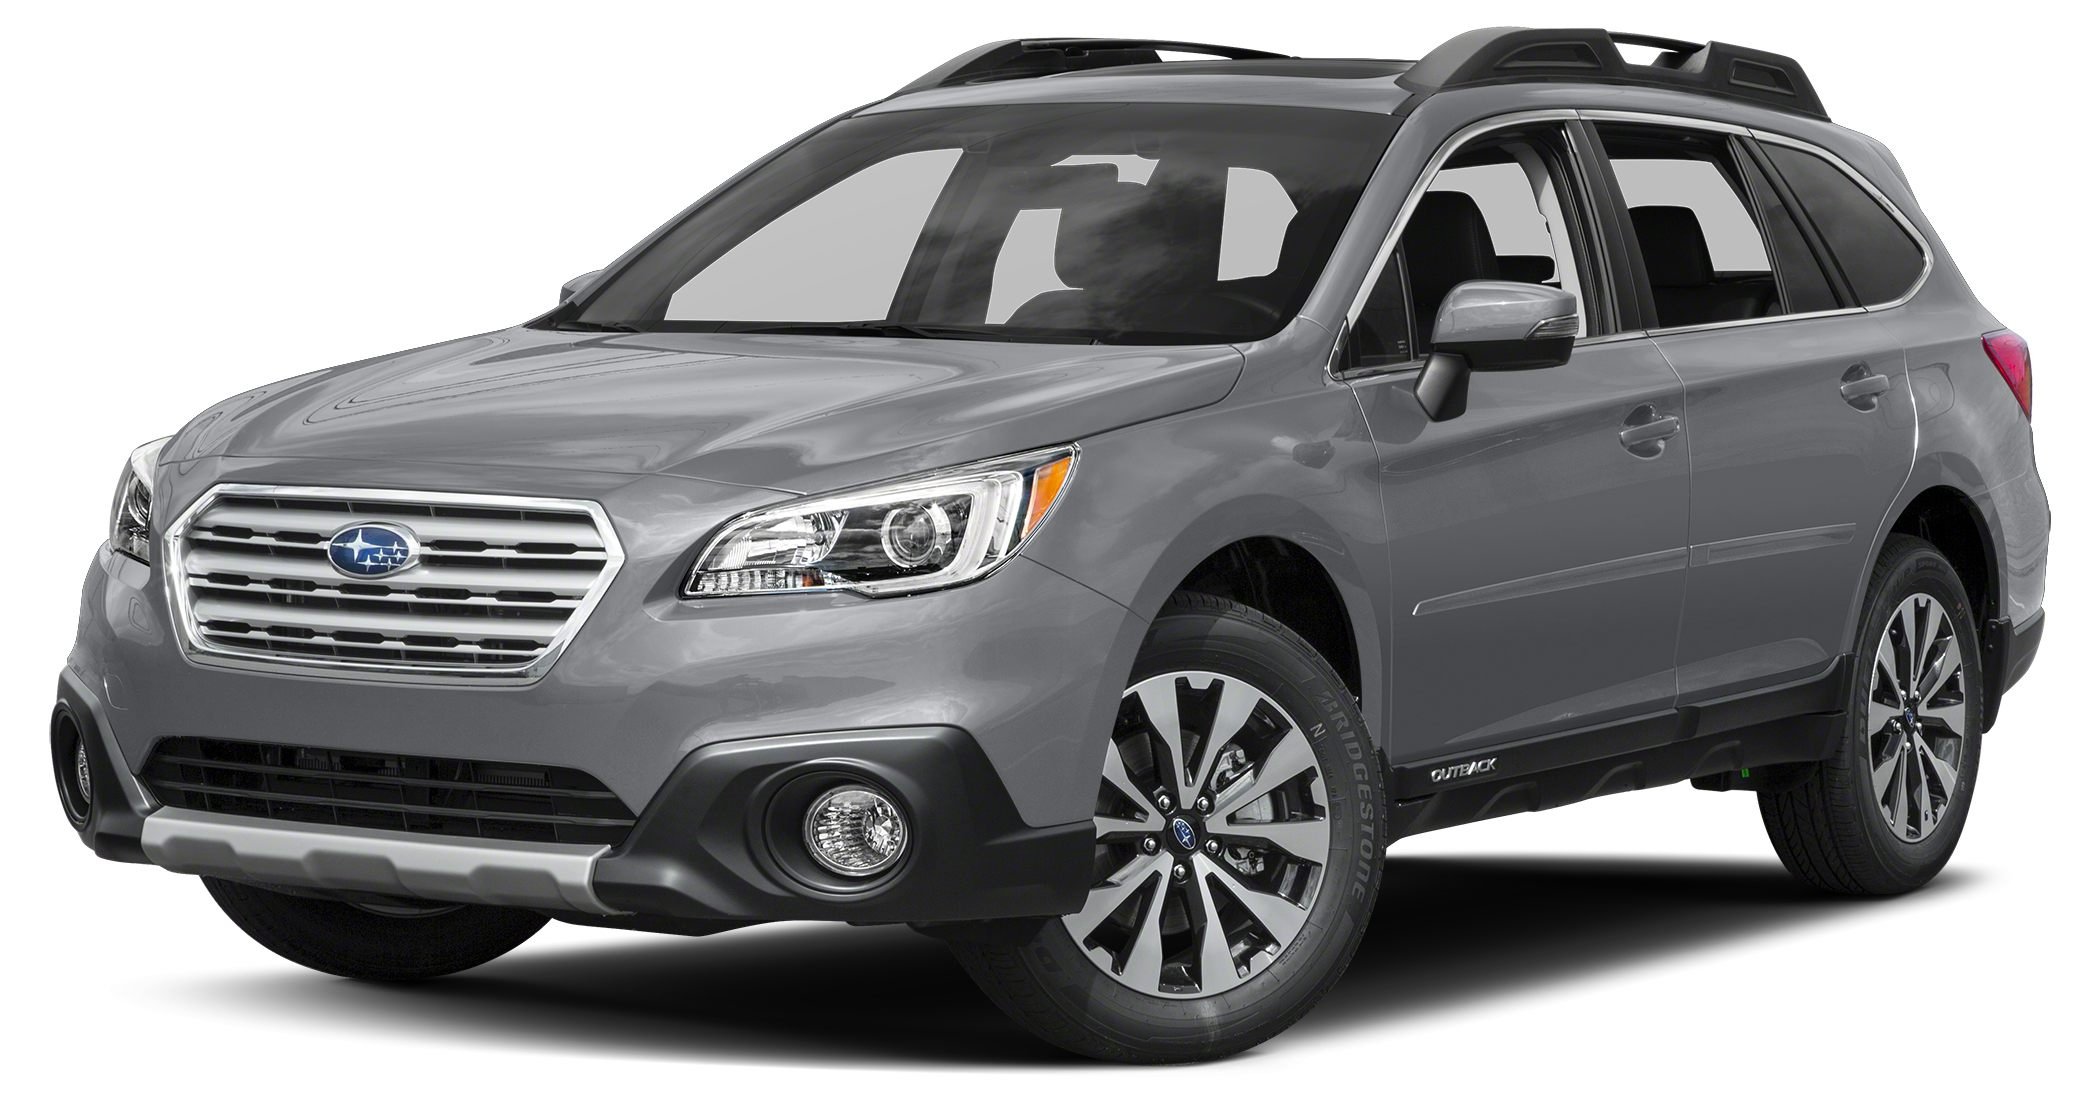 2017 Subaru Outback 36R Limited Miles 5Color Ice Silver Stock SH430855 VIN 4S4BSENC1H343085